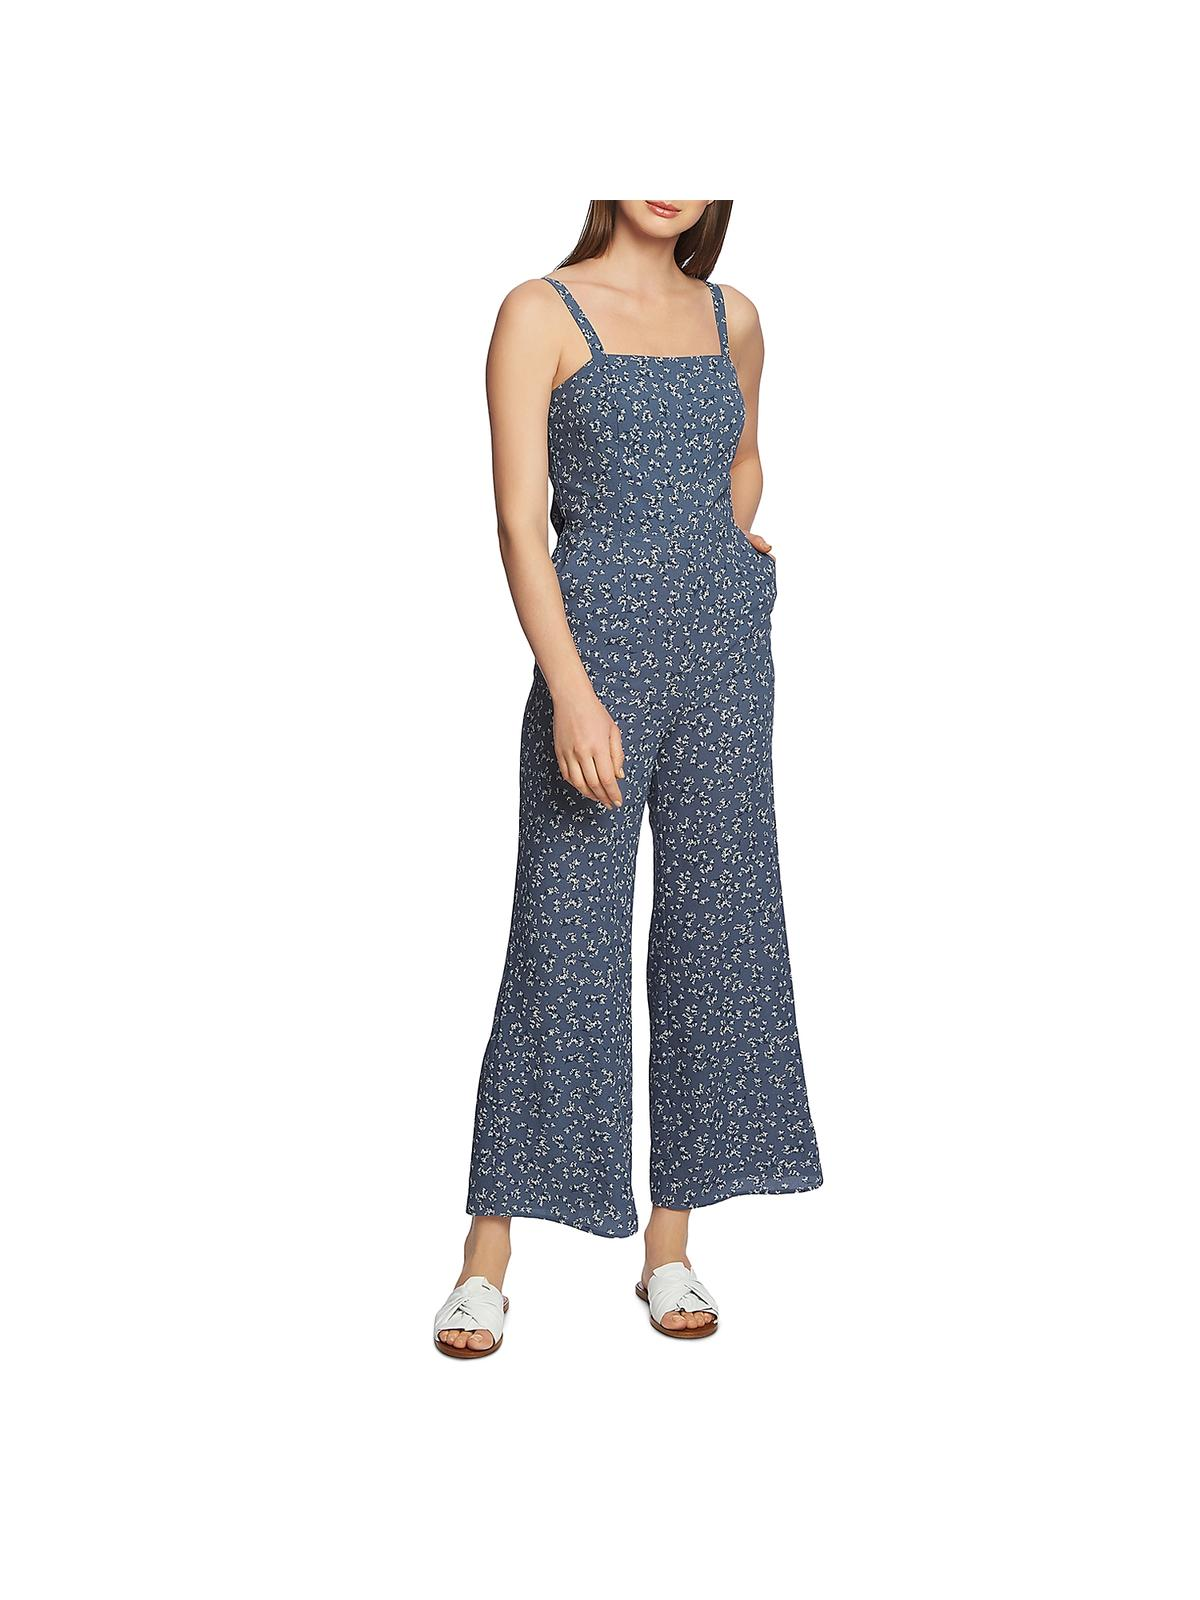 NEW 1.STATE Women/'s Cropped Halter Jumpsuit Tropic Berry MSRP $129.00